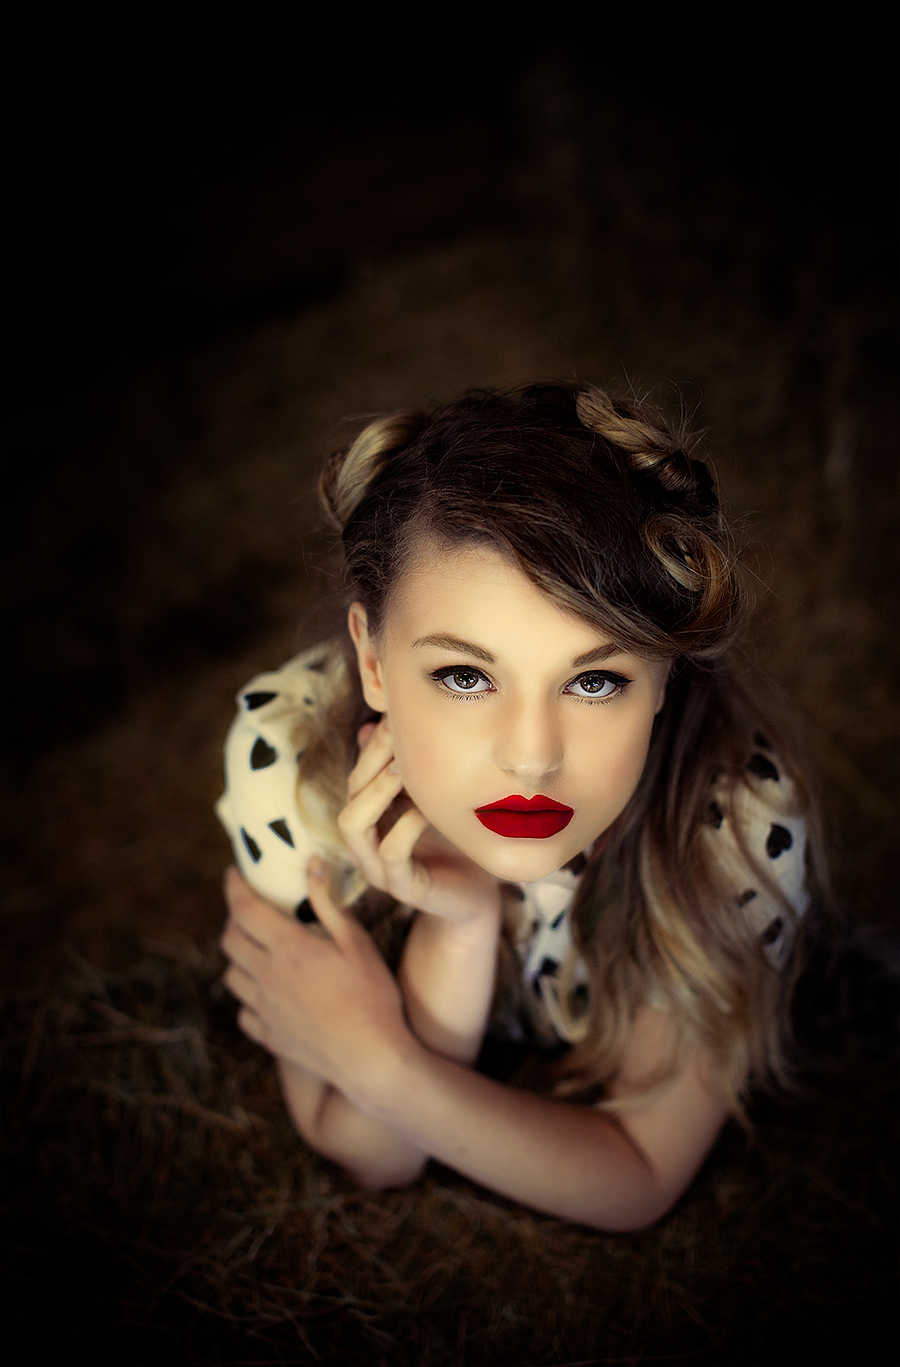 Red lips are not so red as them that have kissed / Photography by jakabi / Uploaded 24th August 2015 @ 10:55 PM